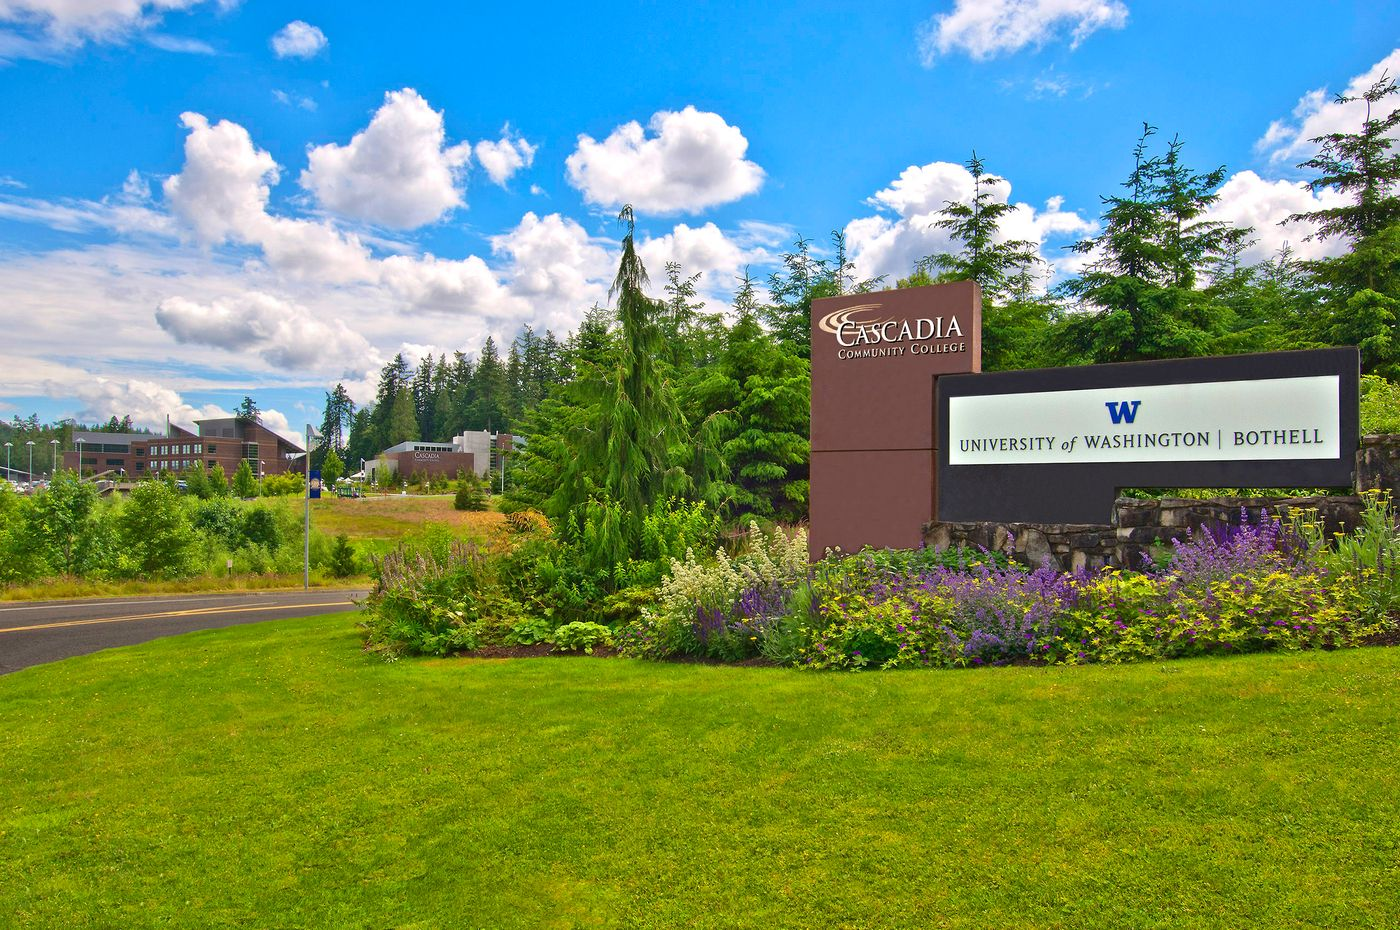 The nortnern entrance to the Cascadia/UW campus in Bothell , WA.